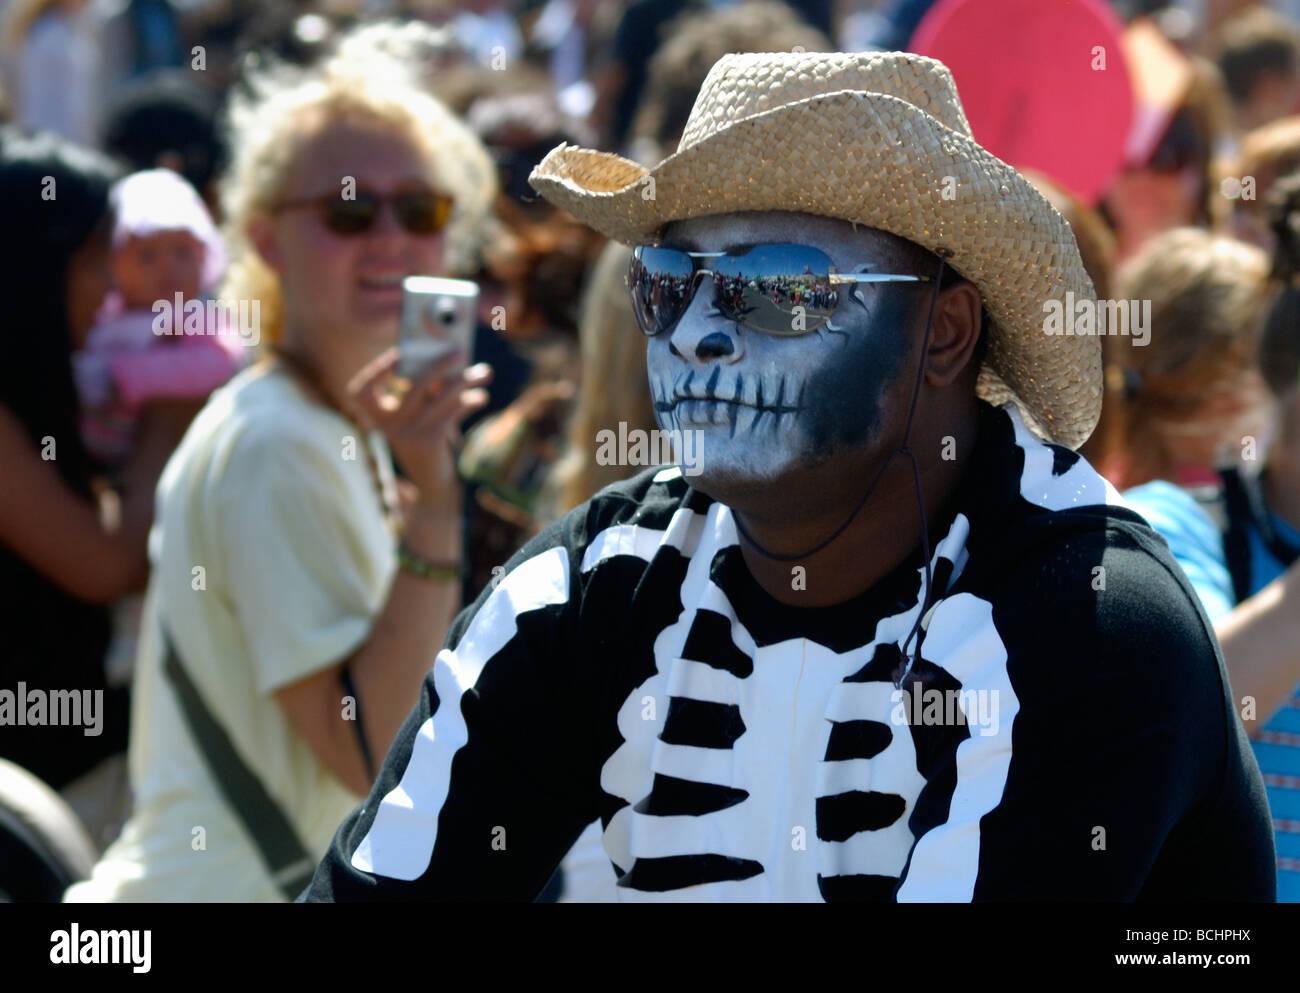 Black man dressed as skeleton with sunglasses and straw hat in street parade - Stock Image